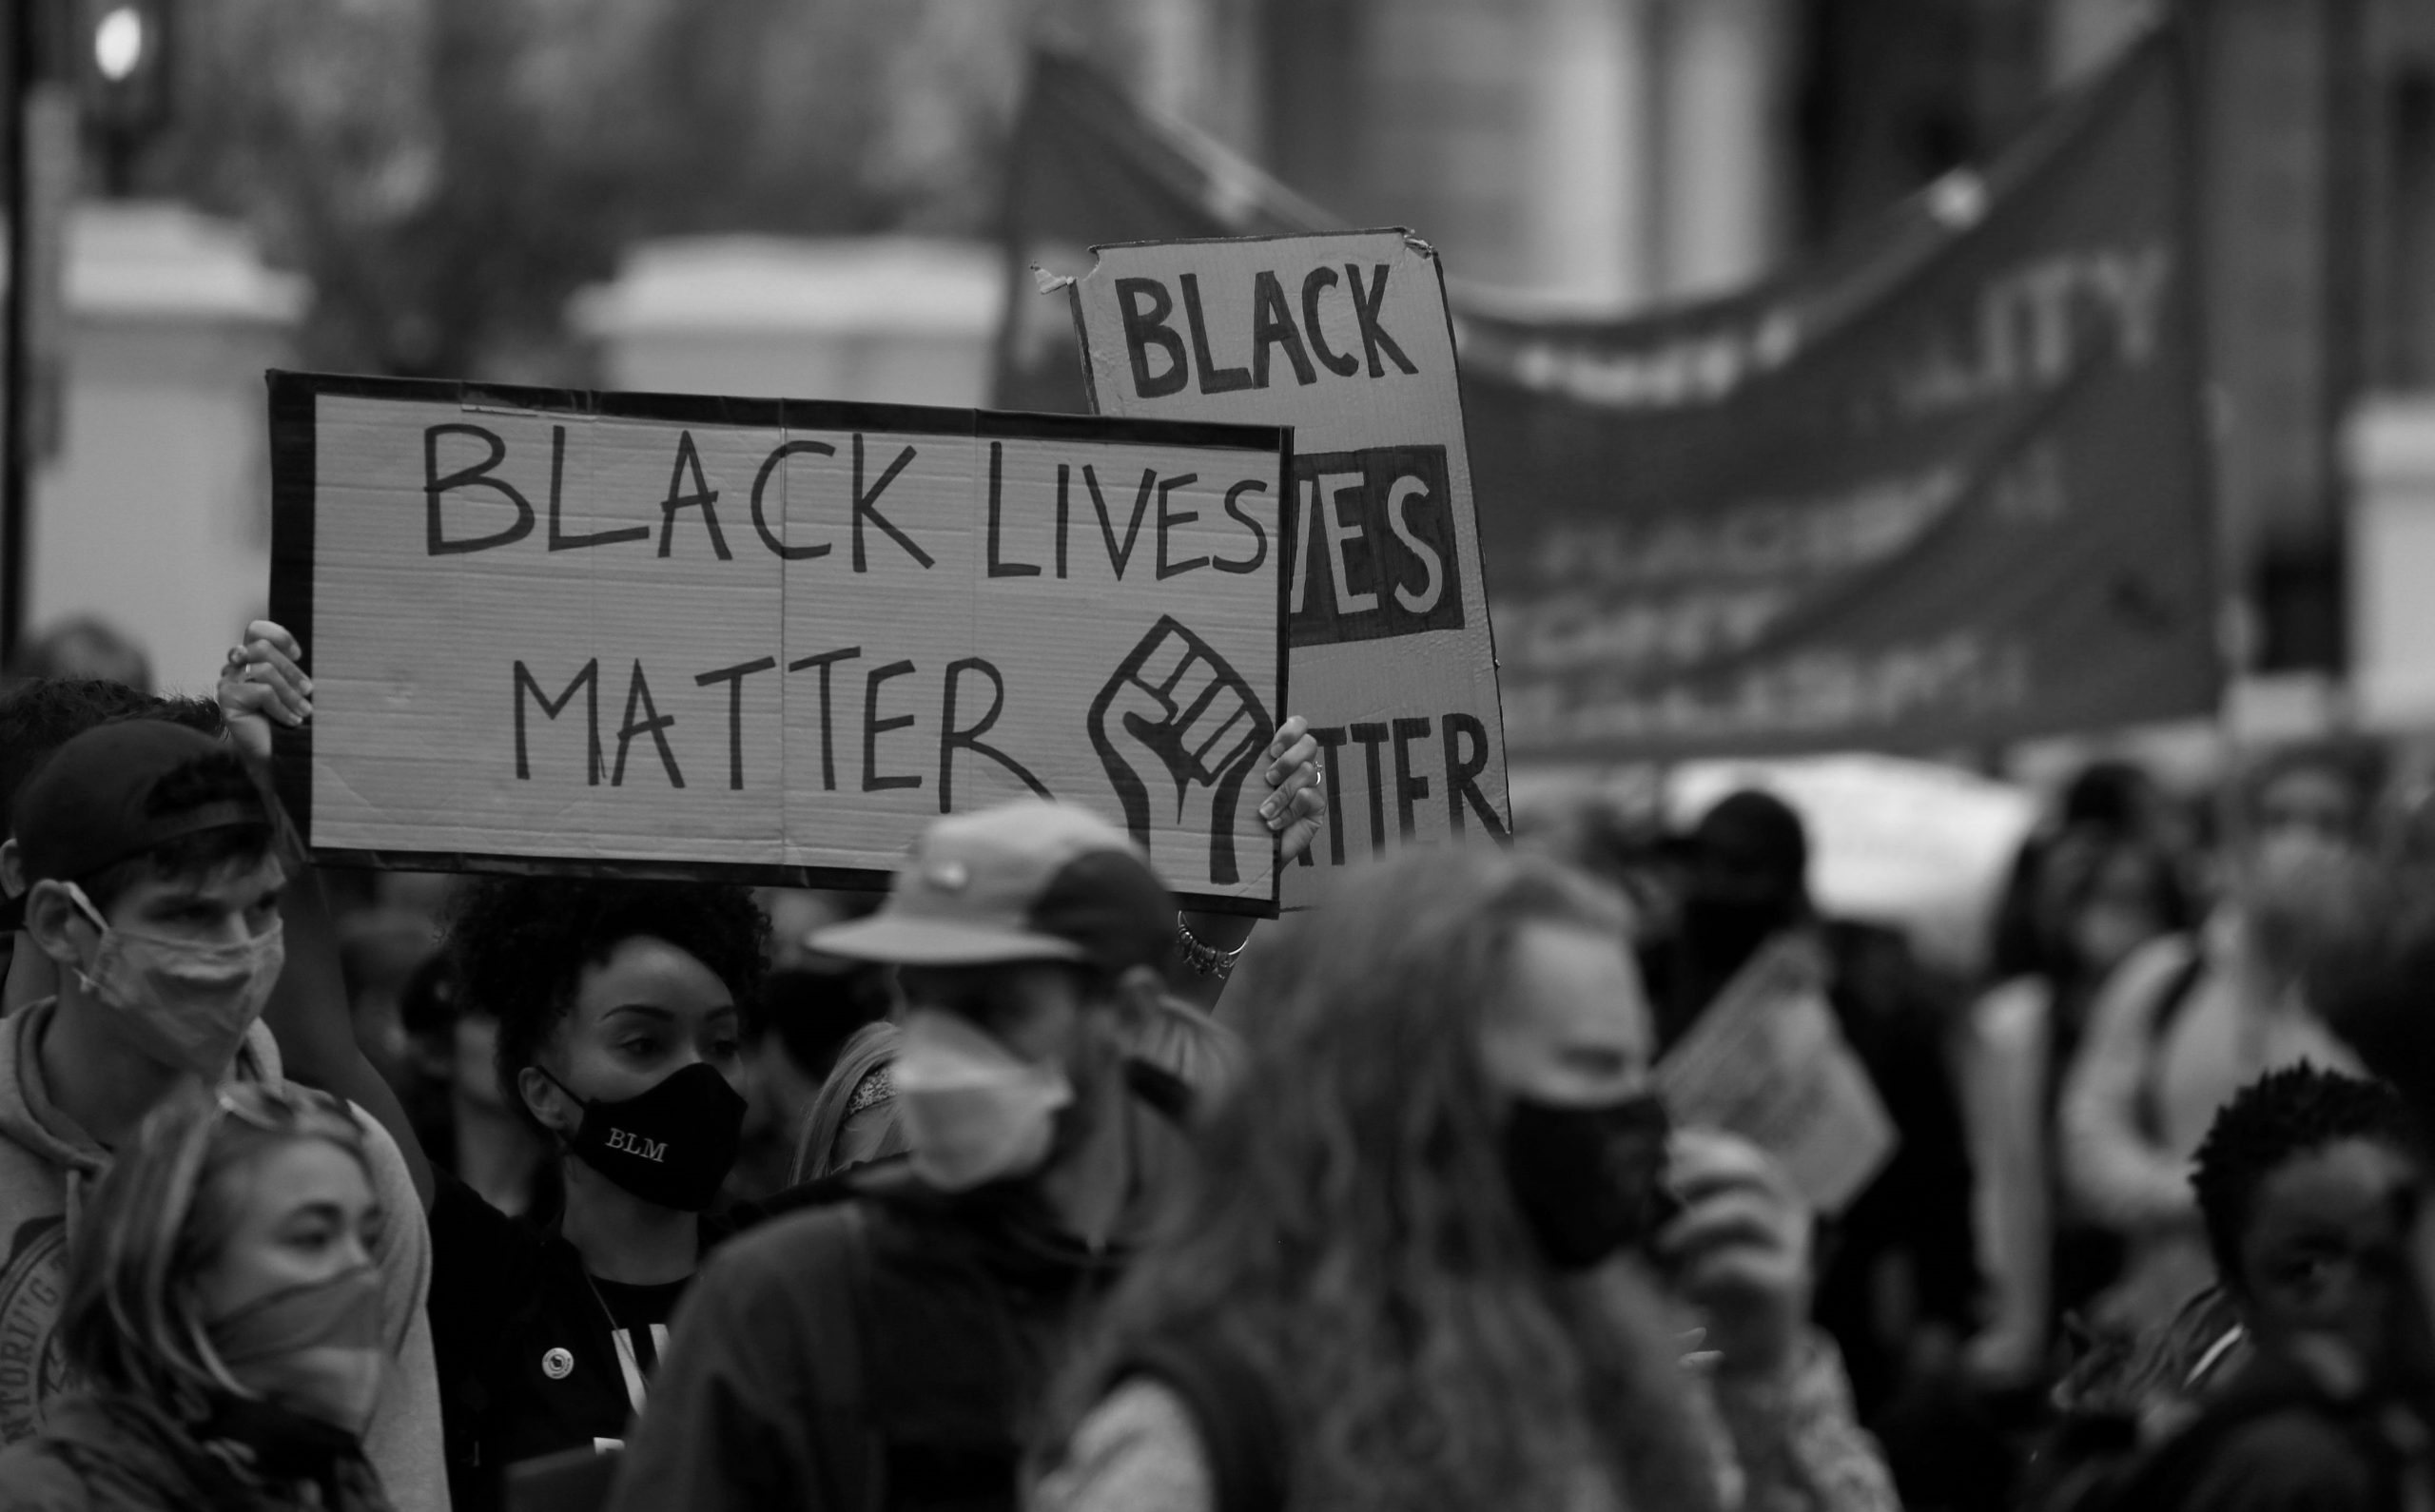 A protest for the BLM movement in London depicting signs.